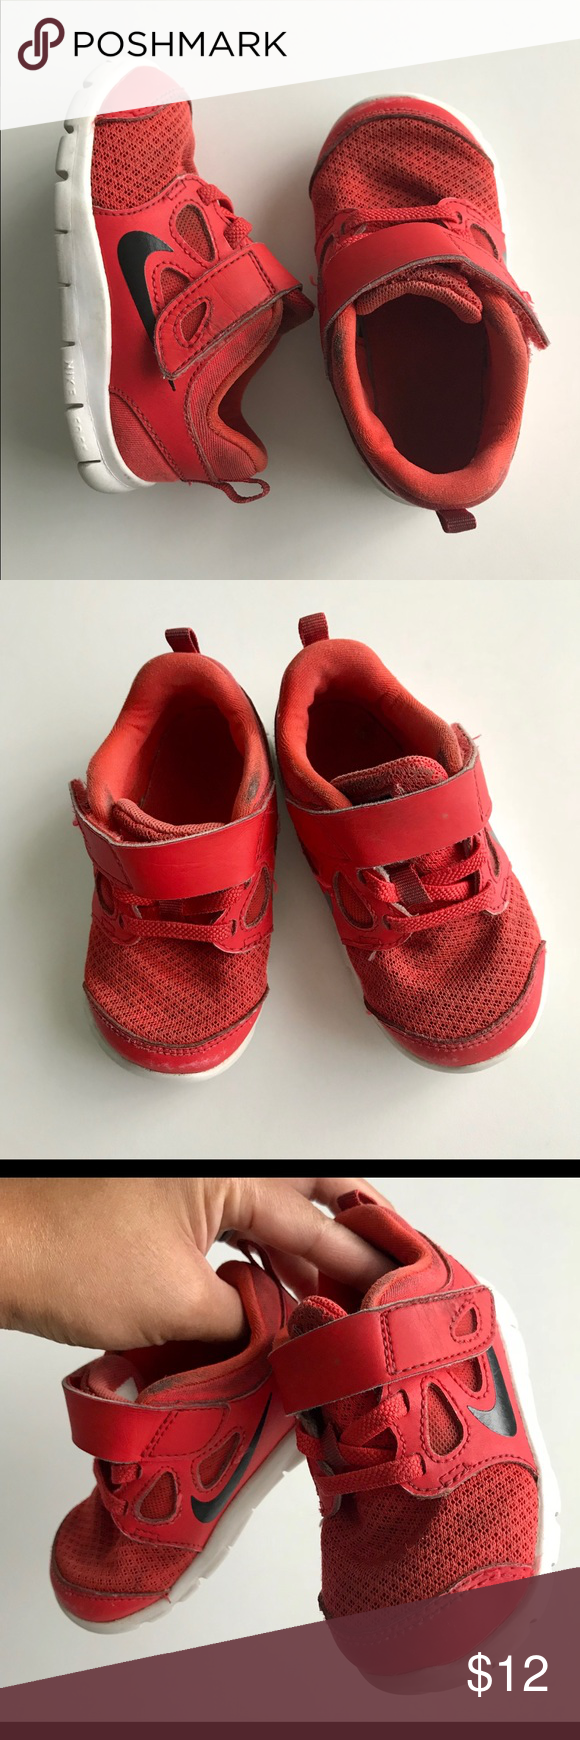 7b2c15db2d3b Nike Boy girl red   black sneakers Still have lots of life left ...